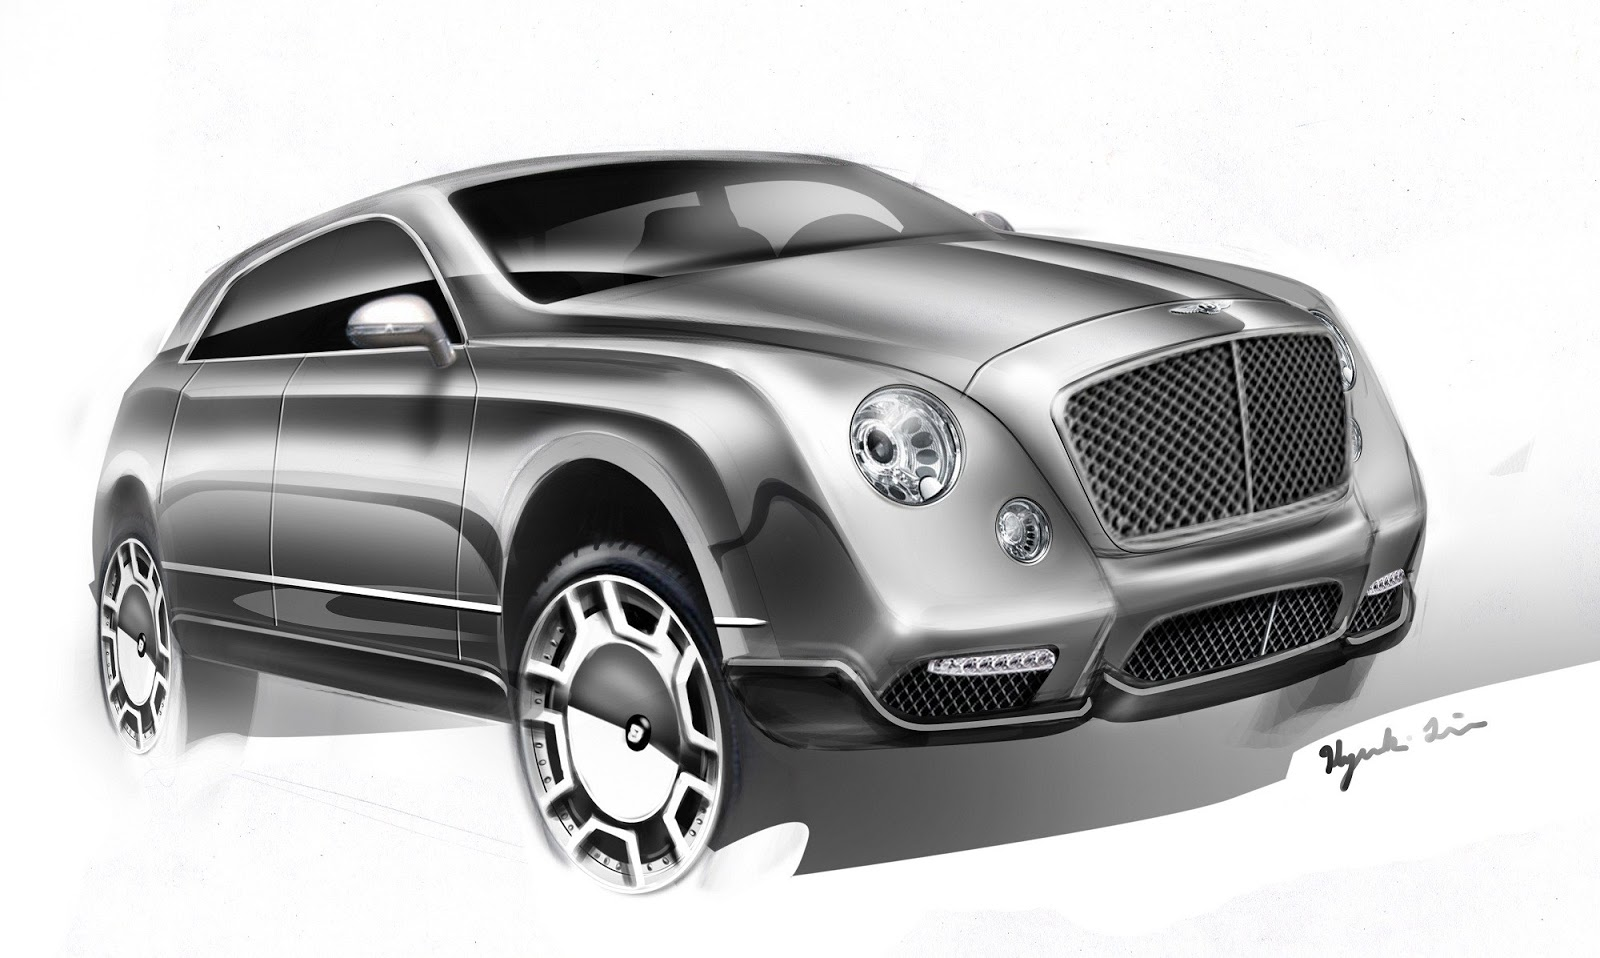 2017 bentley suv widescreen images. Black Bedroom Furniture Sets. Home Design Ideas